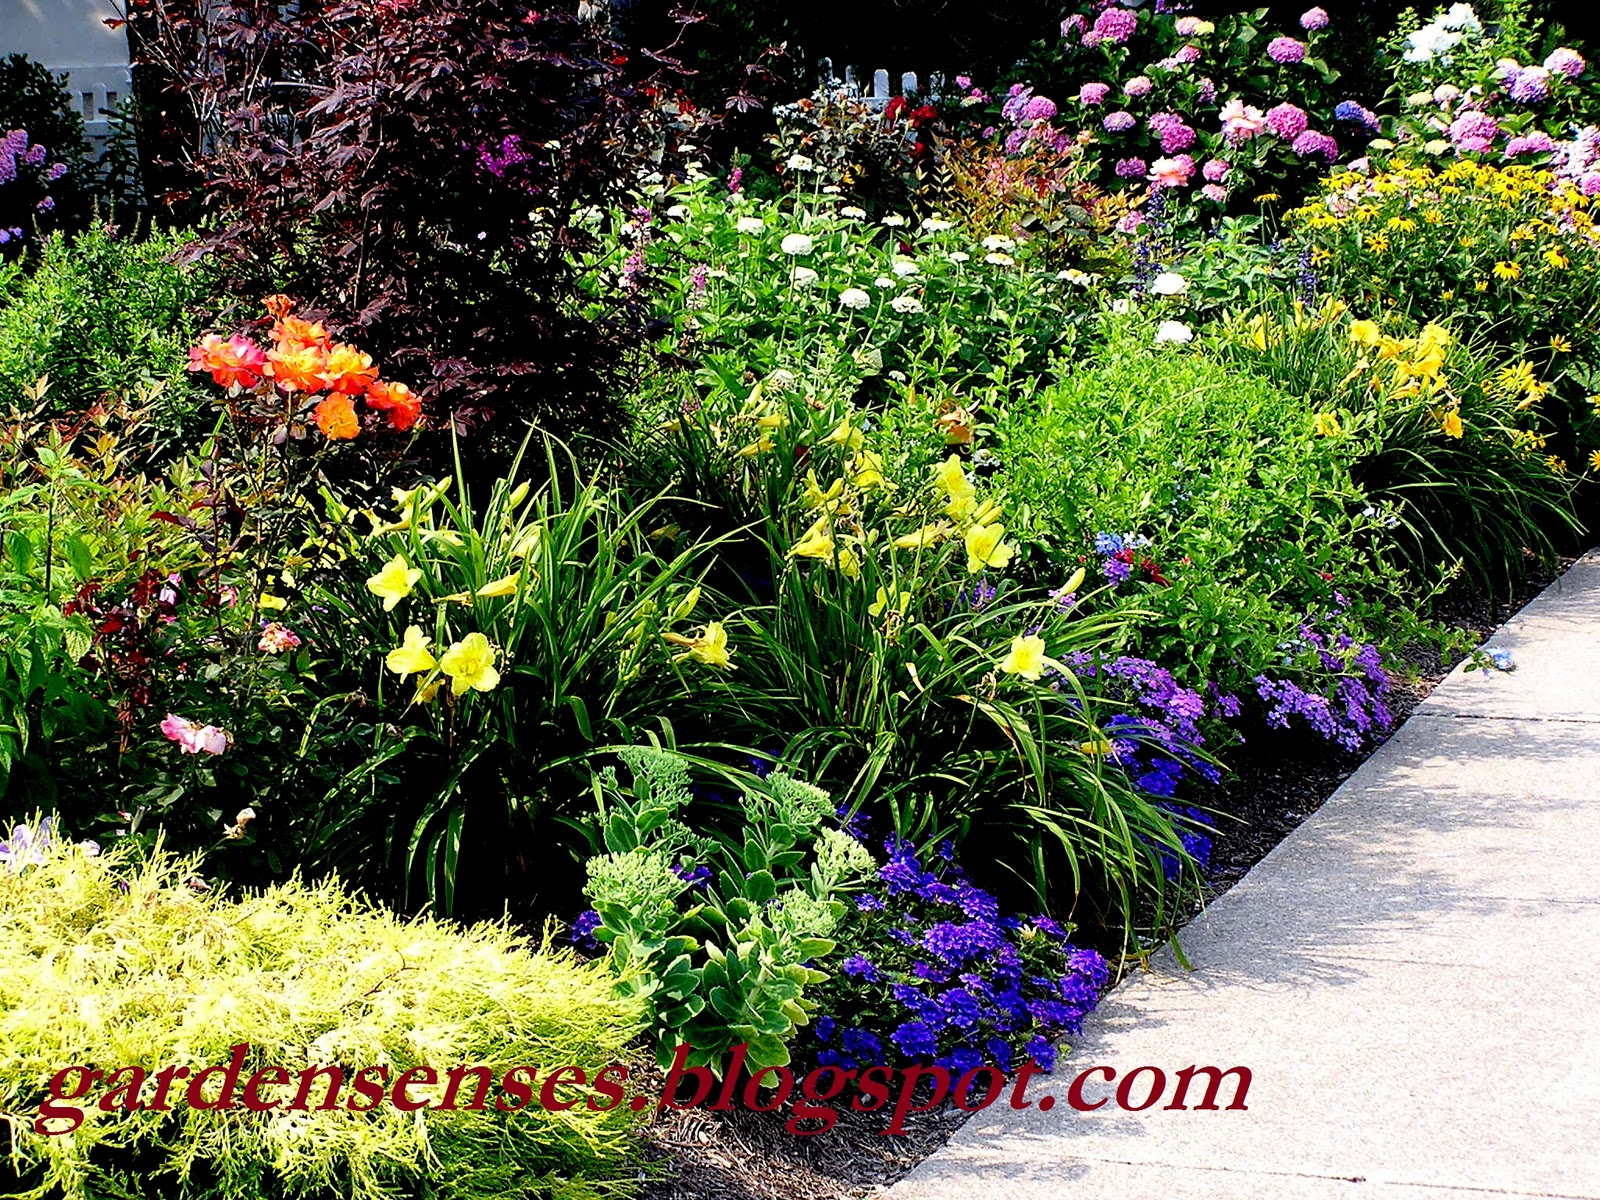 Garden sense garden design i getting started with a plan for Perennial garden design